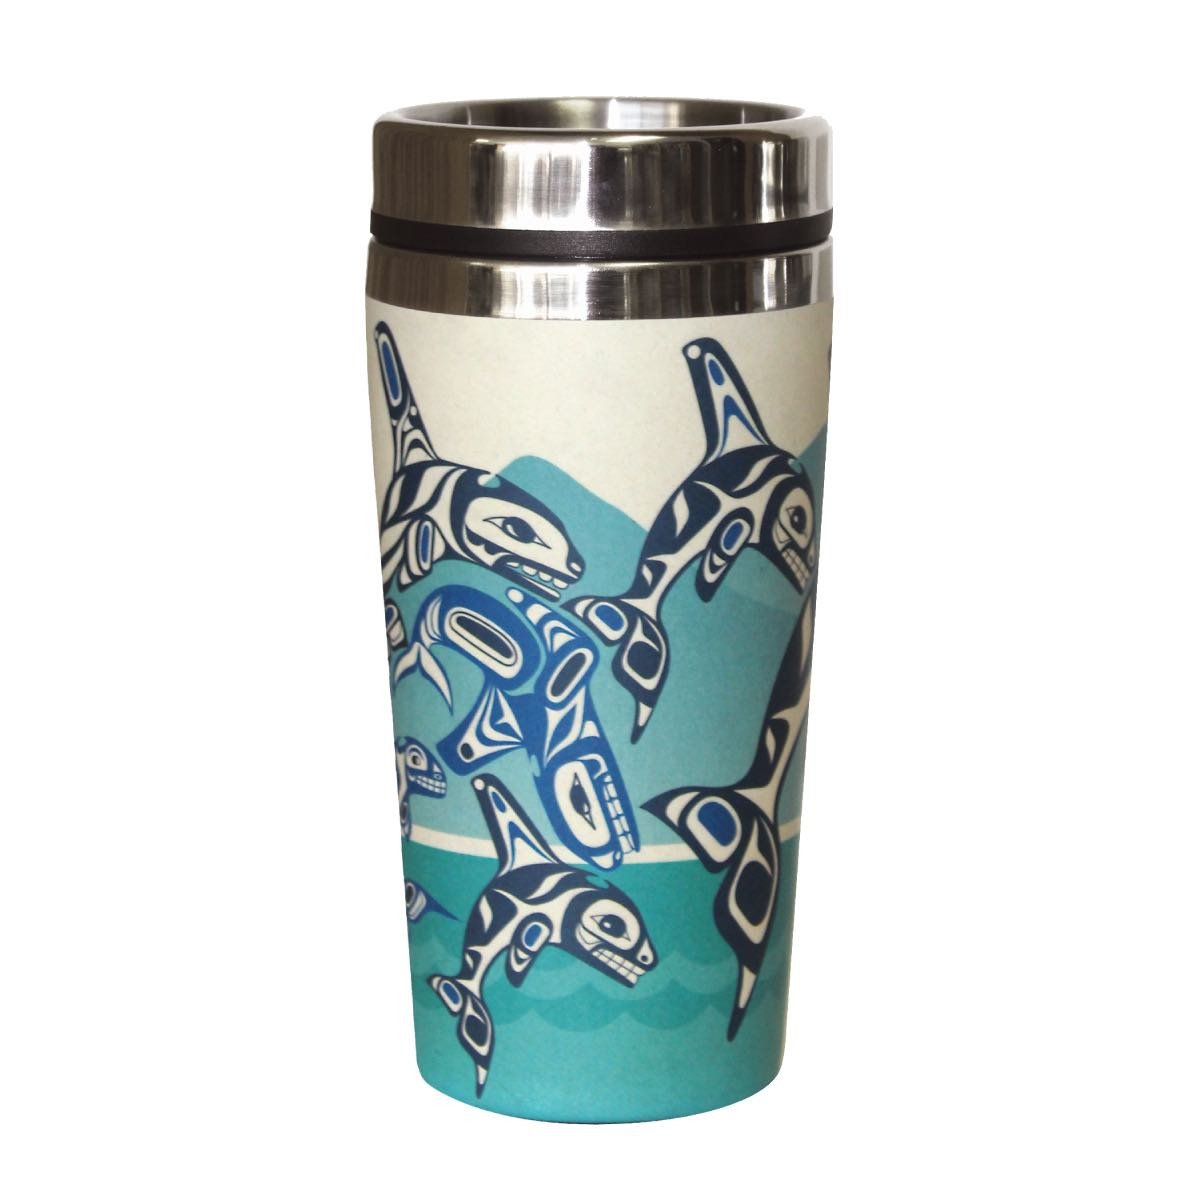 Bamboo Fibre Stainless Steel Travel Mug by Paul Windsor, Haisla/Heiltsuk